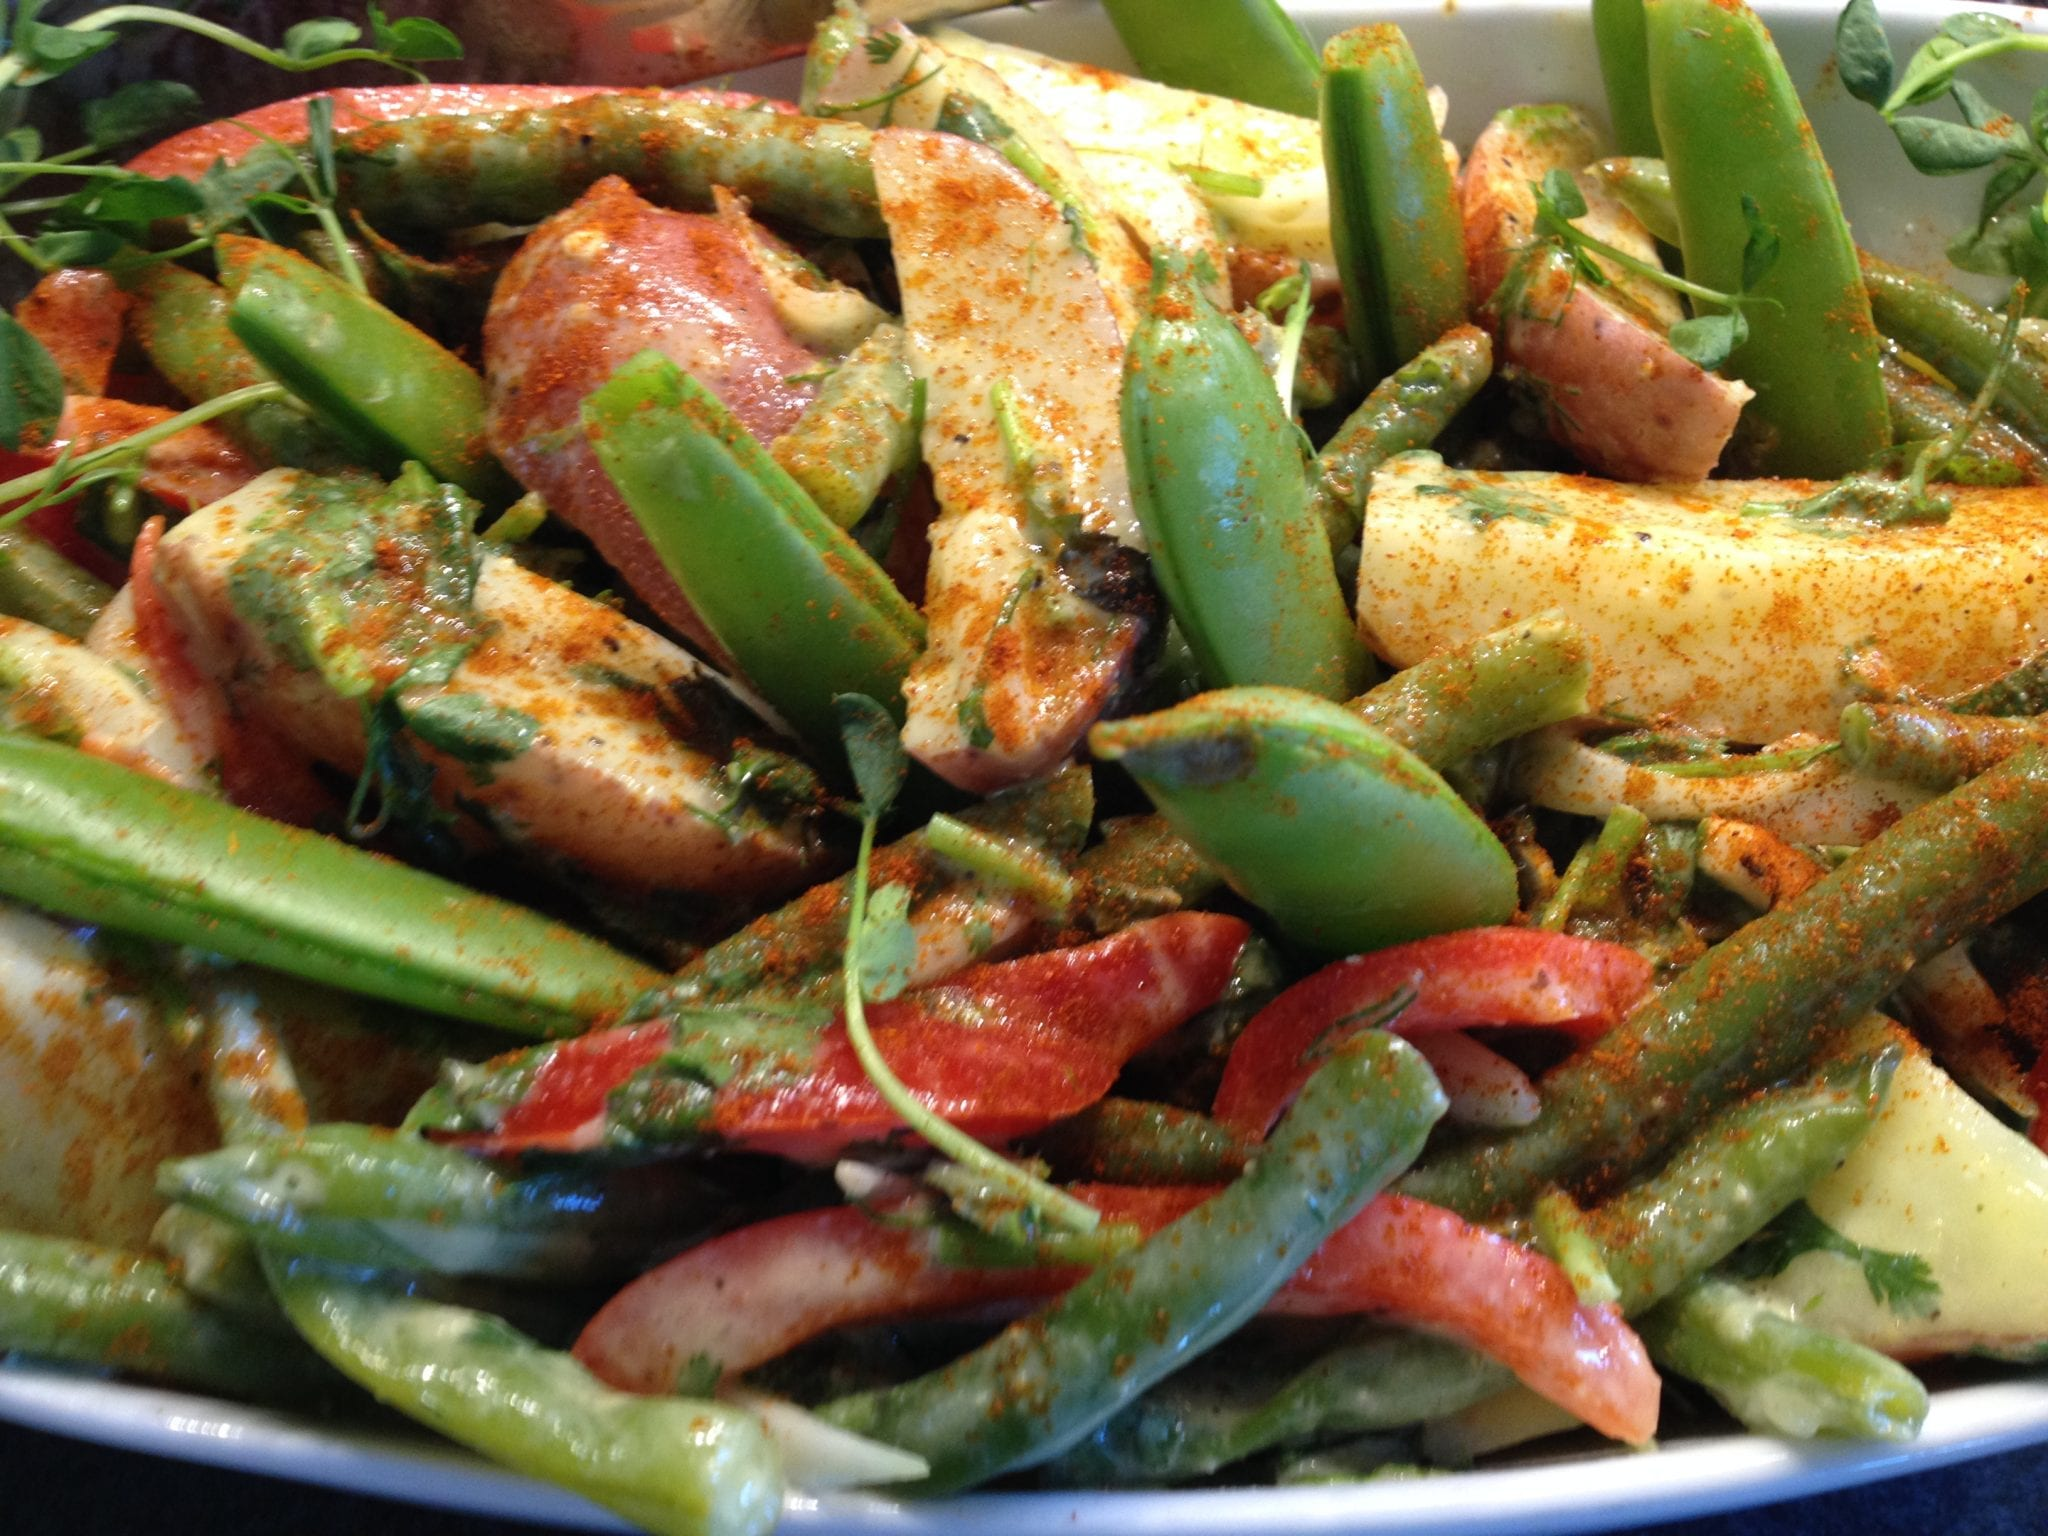 Dijon Potato Salad with Green Beans & Arugula